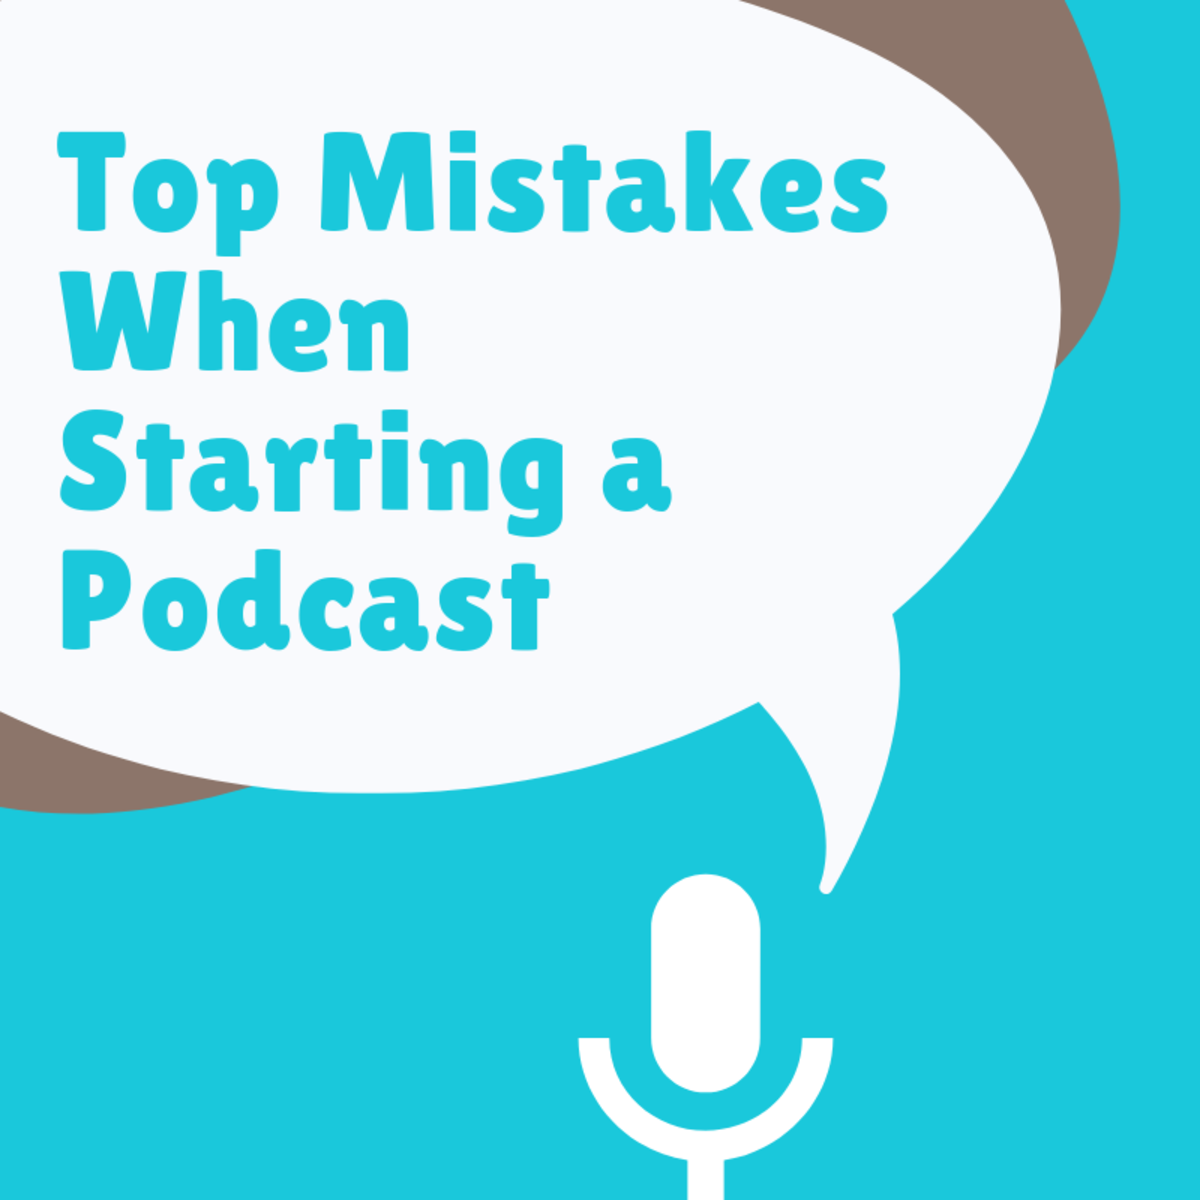 Top Mistakes When Starting a Podcast